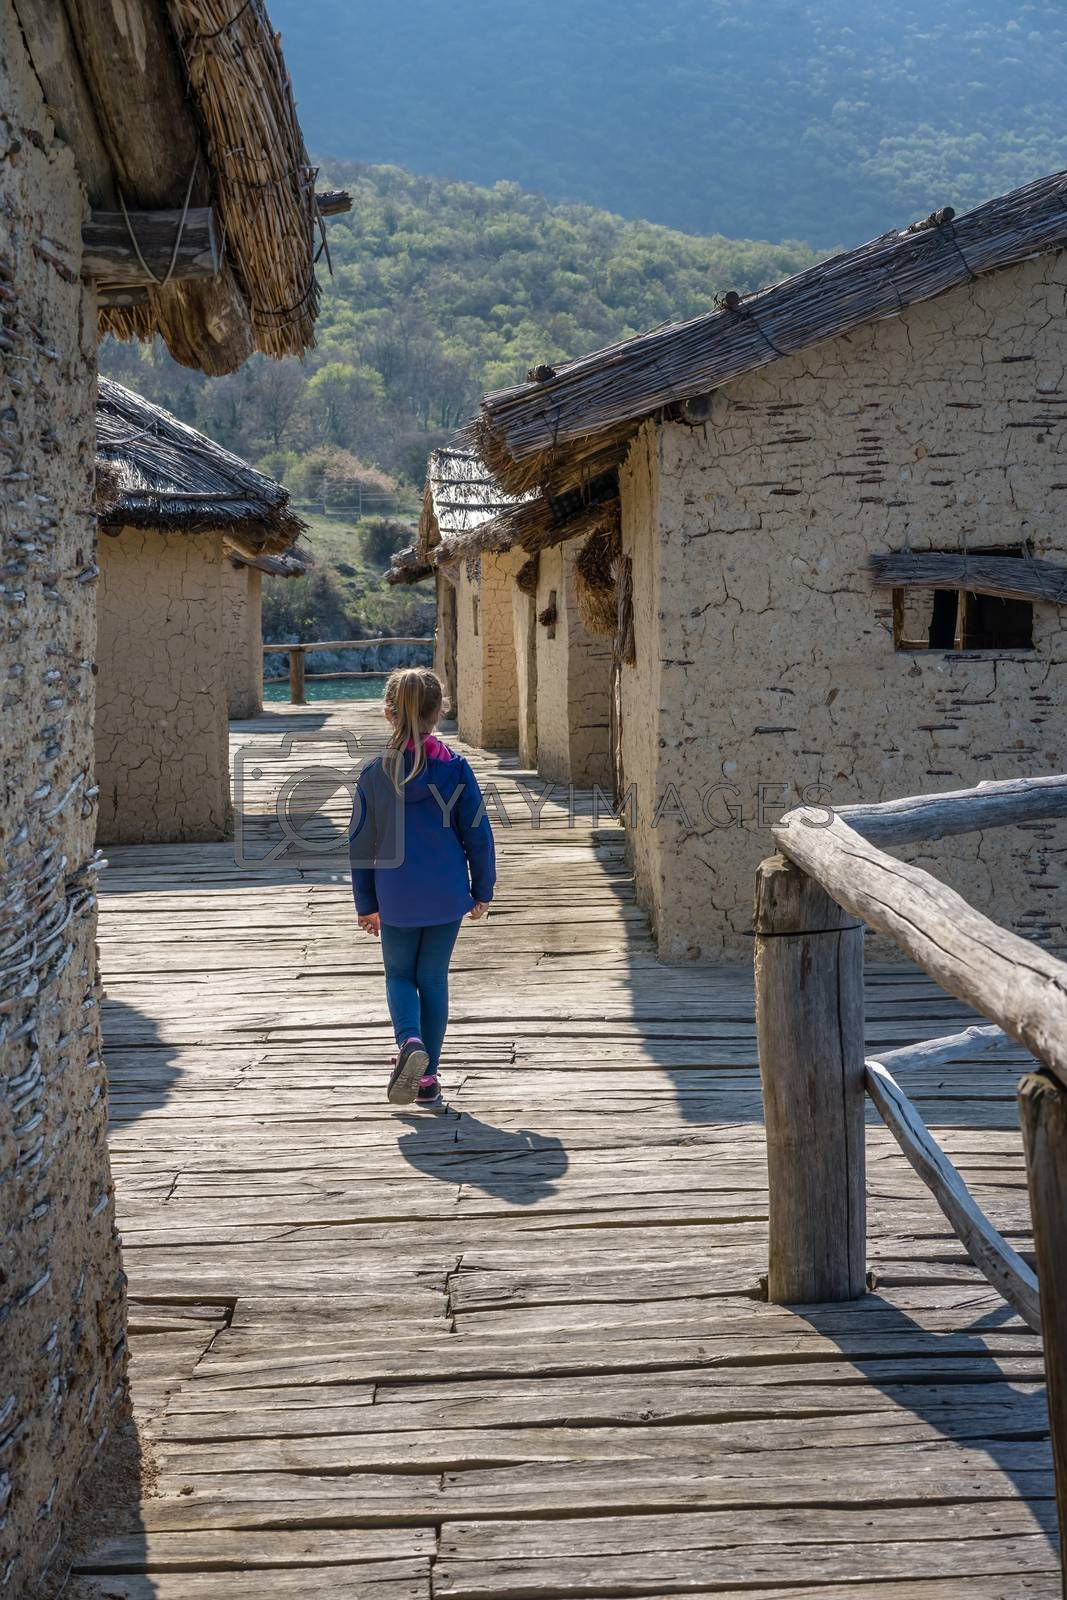 Little Caucasian girl walking among mud and straw houses in the Bay of the bones museum on water, authentic reconstruction of the pile dwelling settlement, Ohrid, Republic of Macedonia